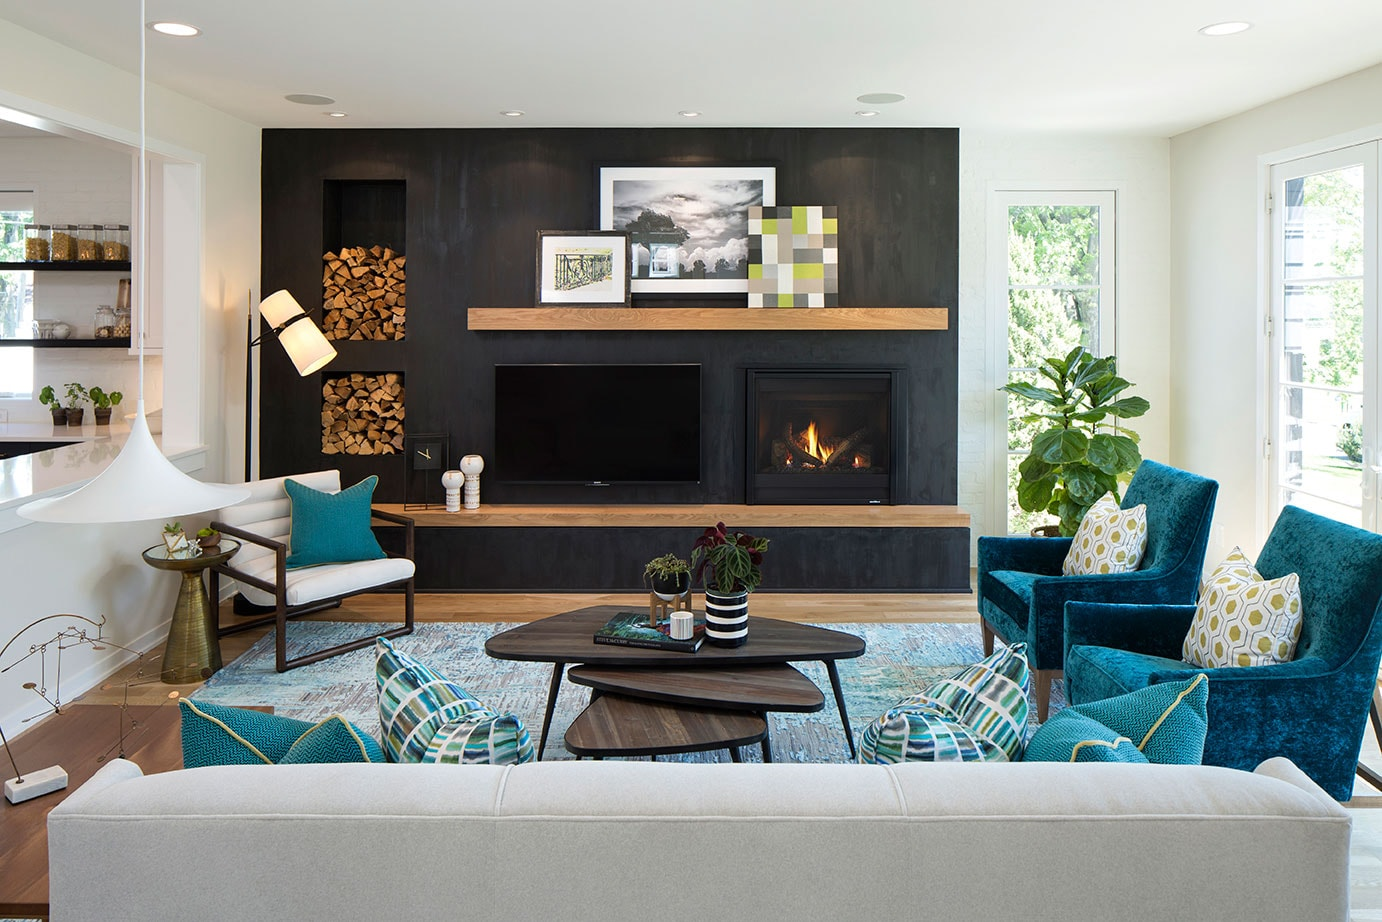 7 Inspirational Living Room Layout Ideas